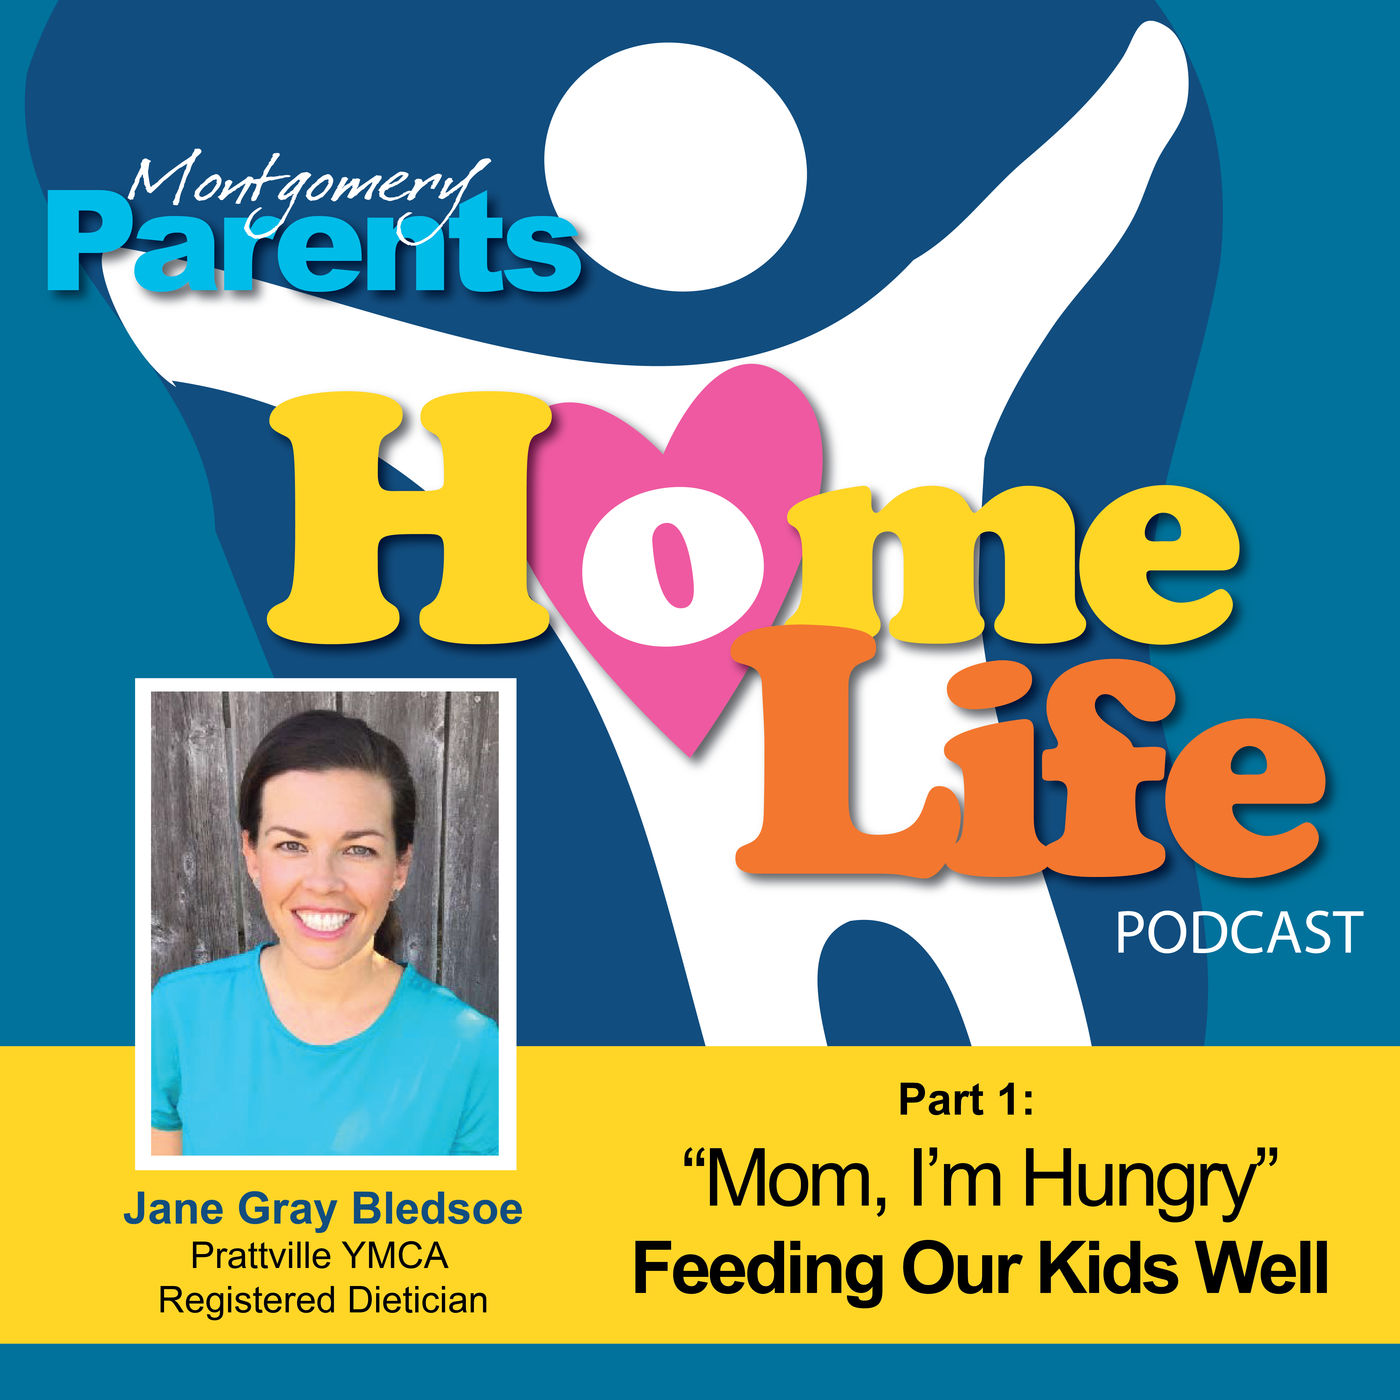 Part 1 - Feeding Our Kids Well with Jane Gray Bledsoe